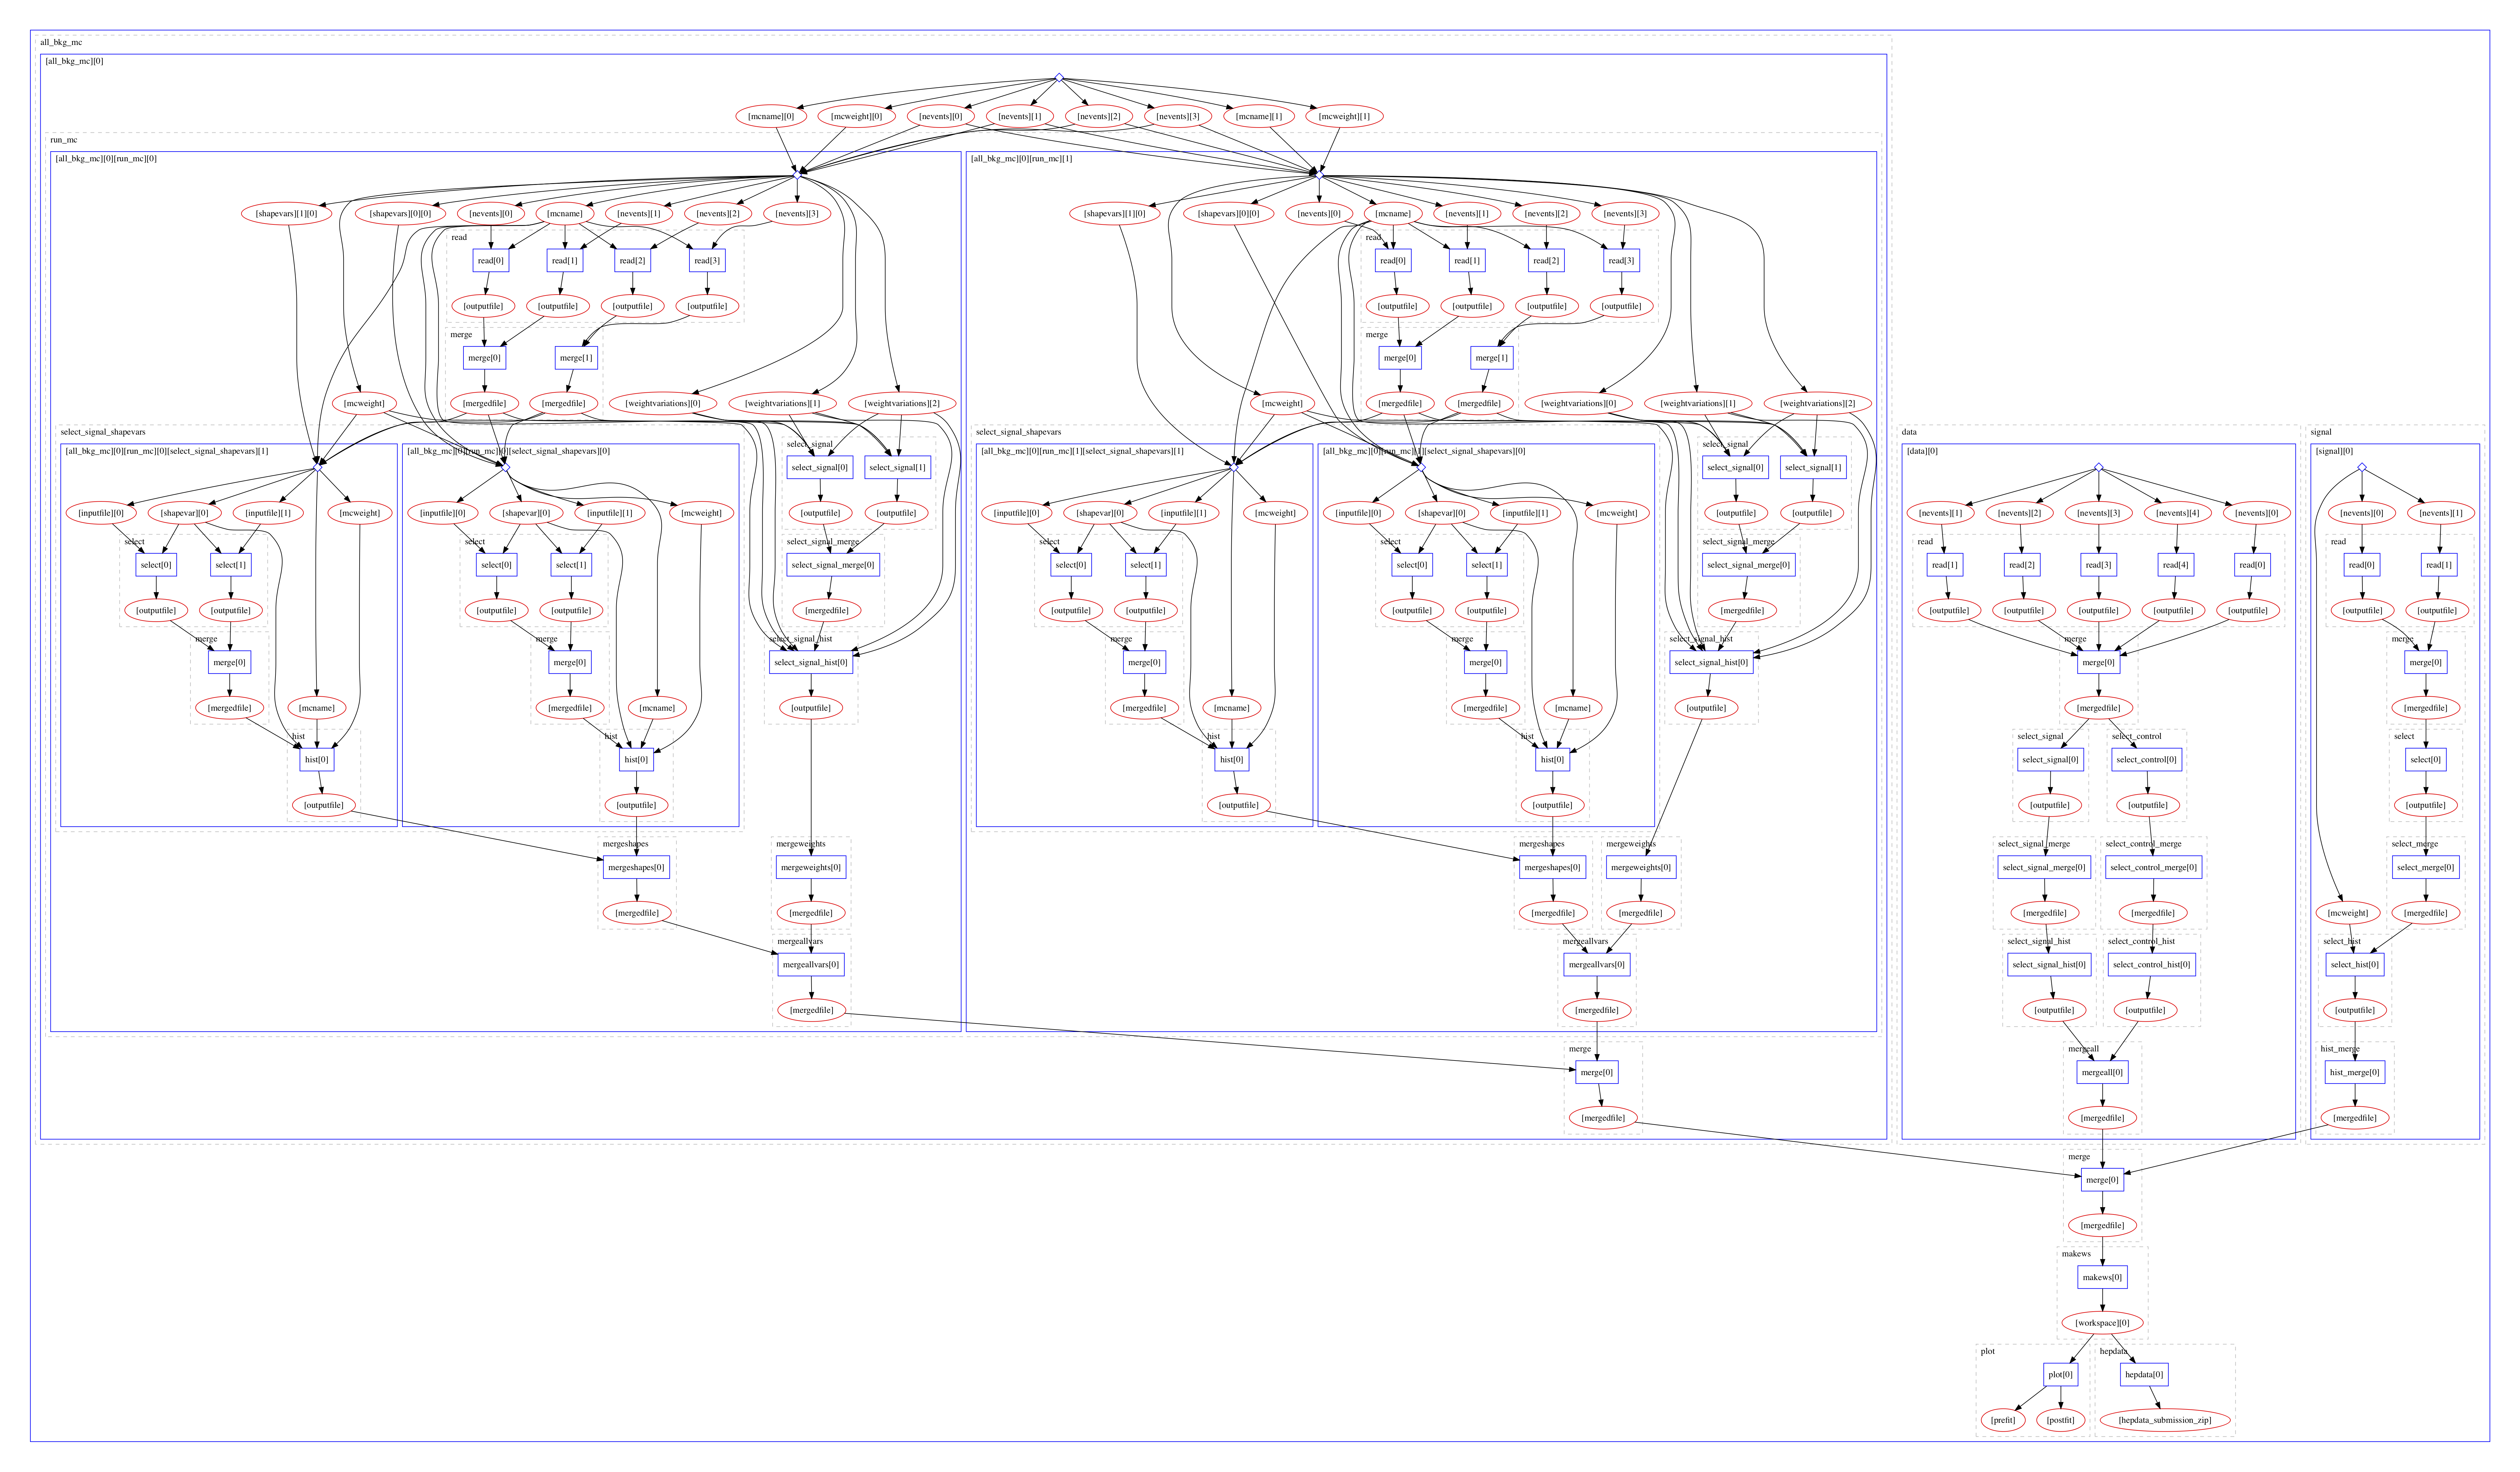 workflow.png